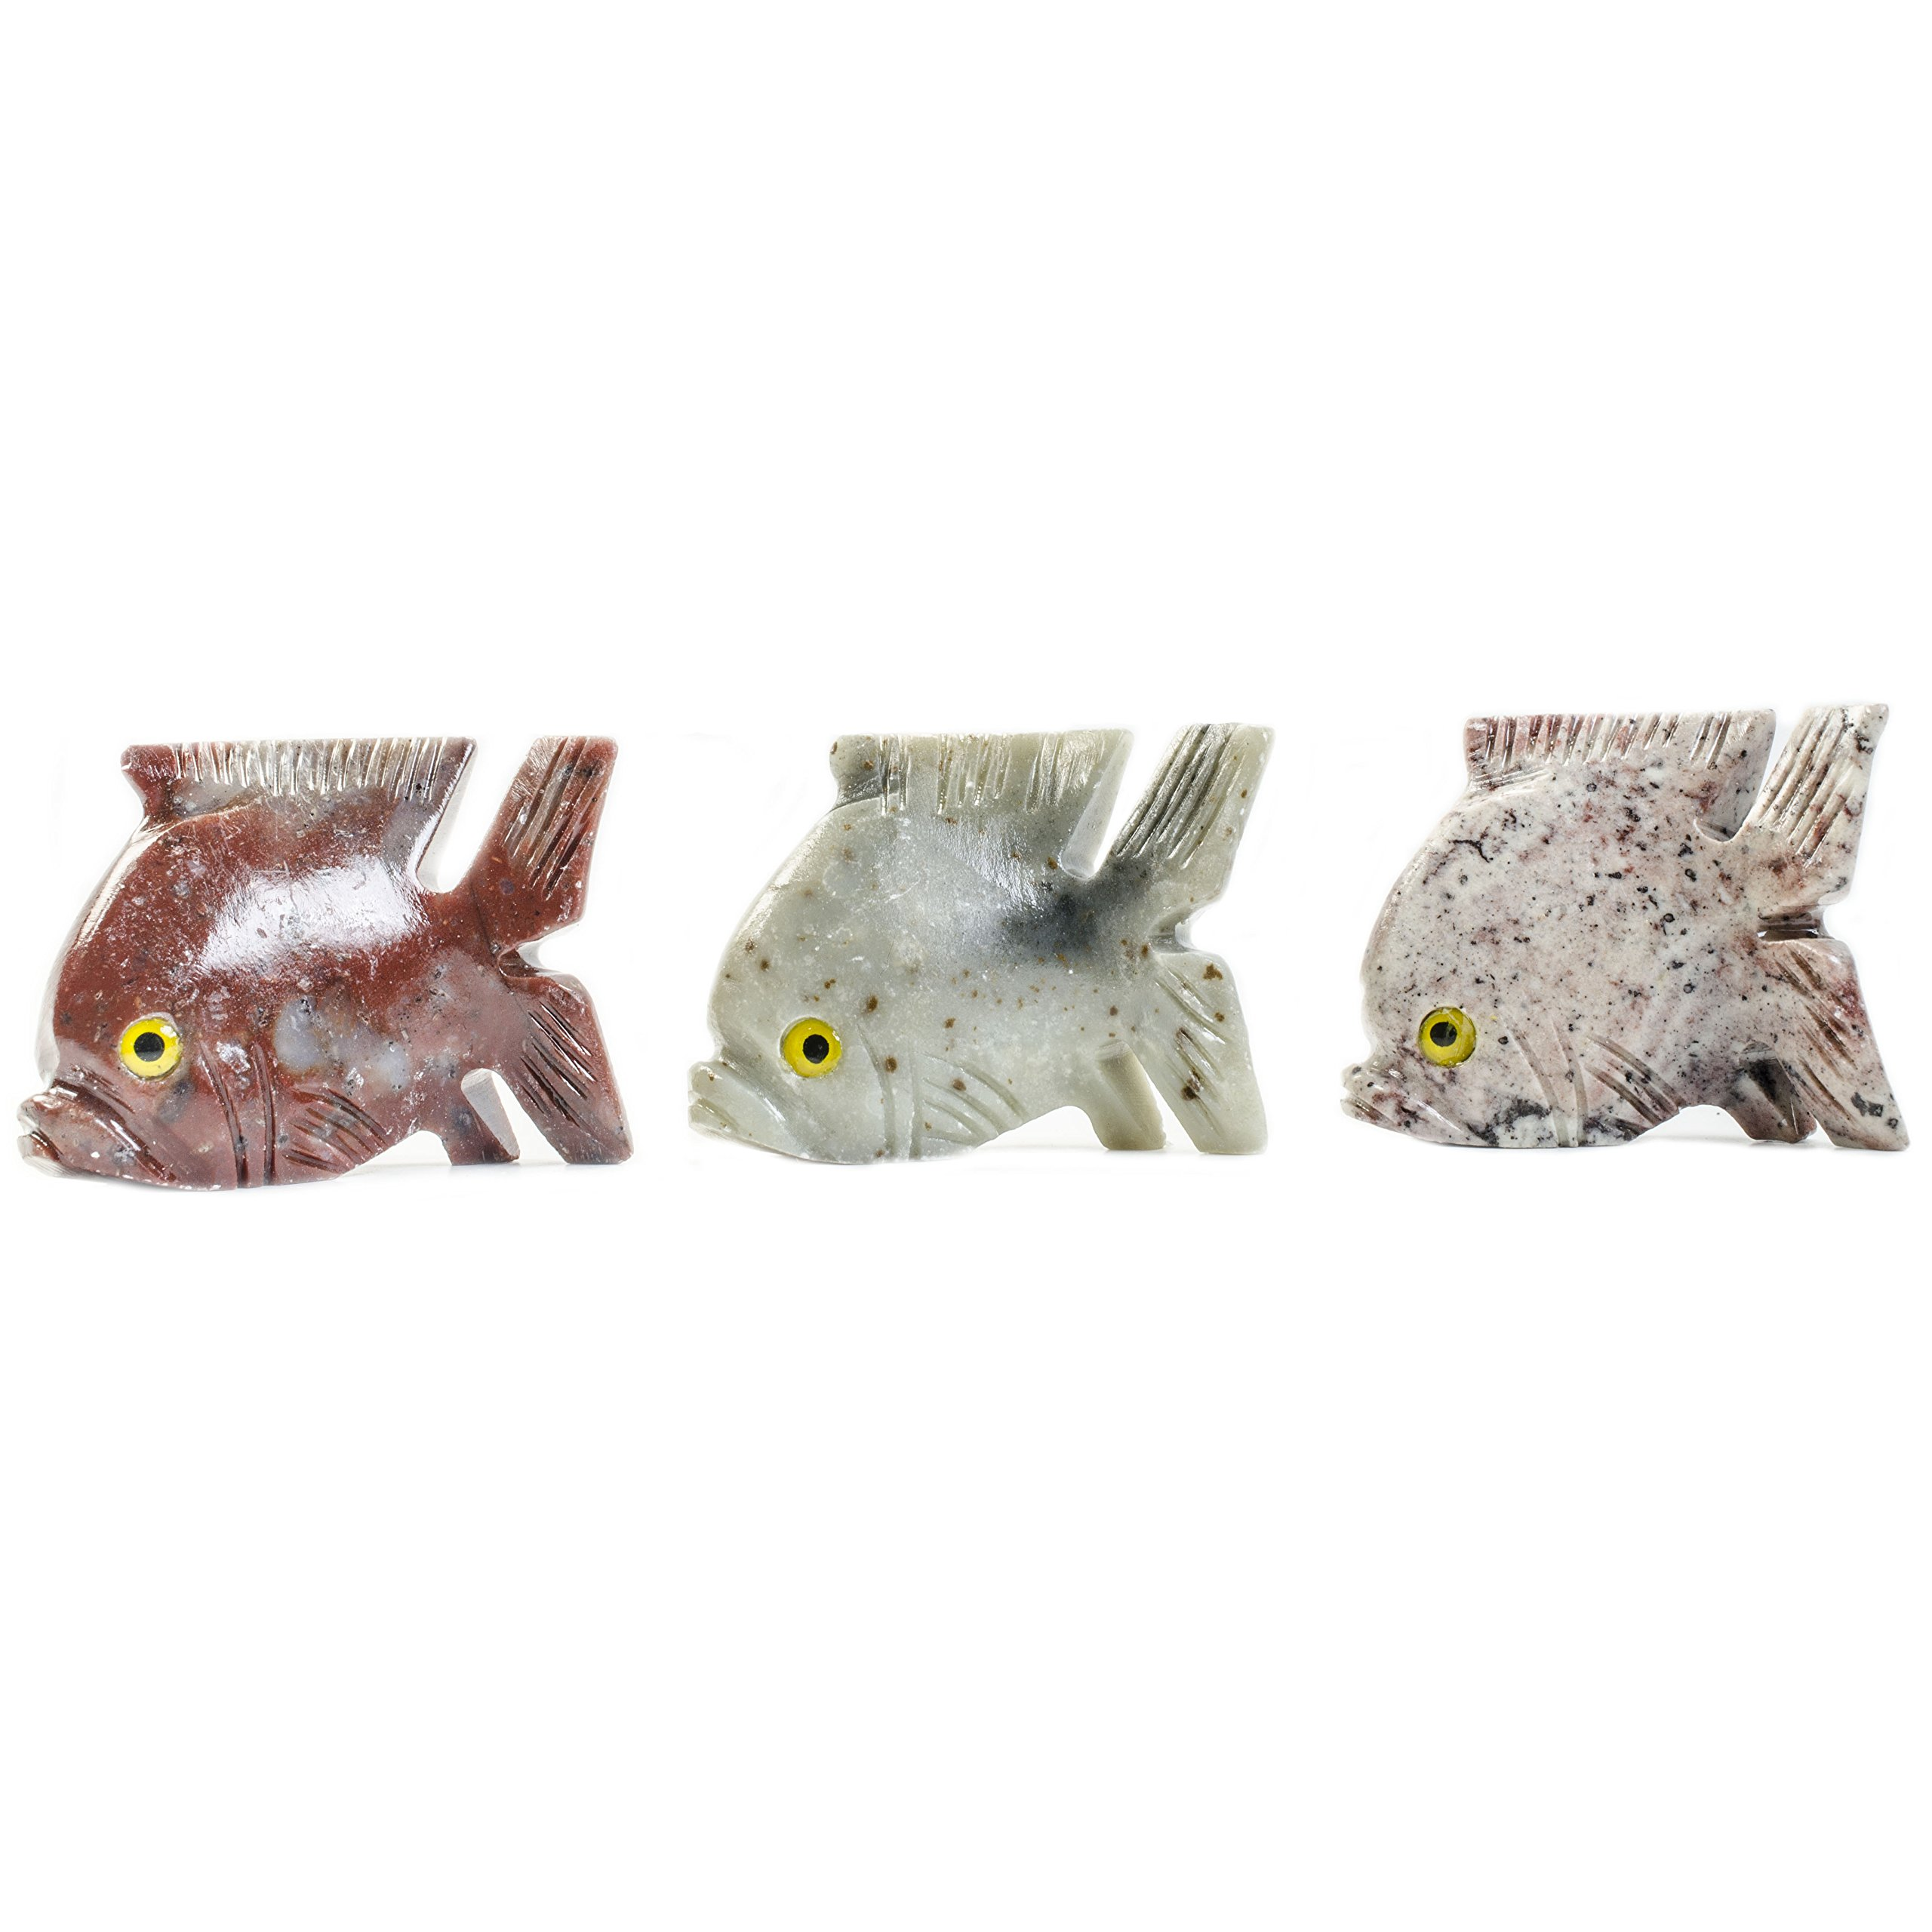 Hypnotic Gems Carvings: 10 pcs Hand Carved Piranha Collectable Animal Figurine - Beautiful Unique Stone Carvings for Gifts, Party Favors, Jewelry Making, and More!